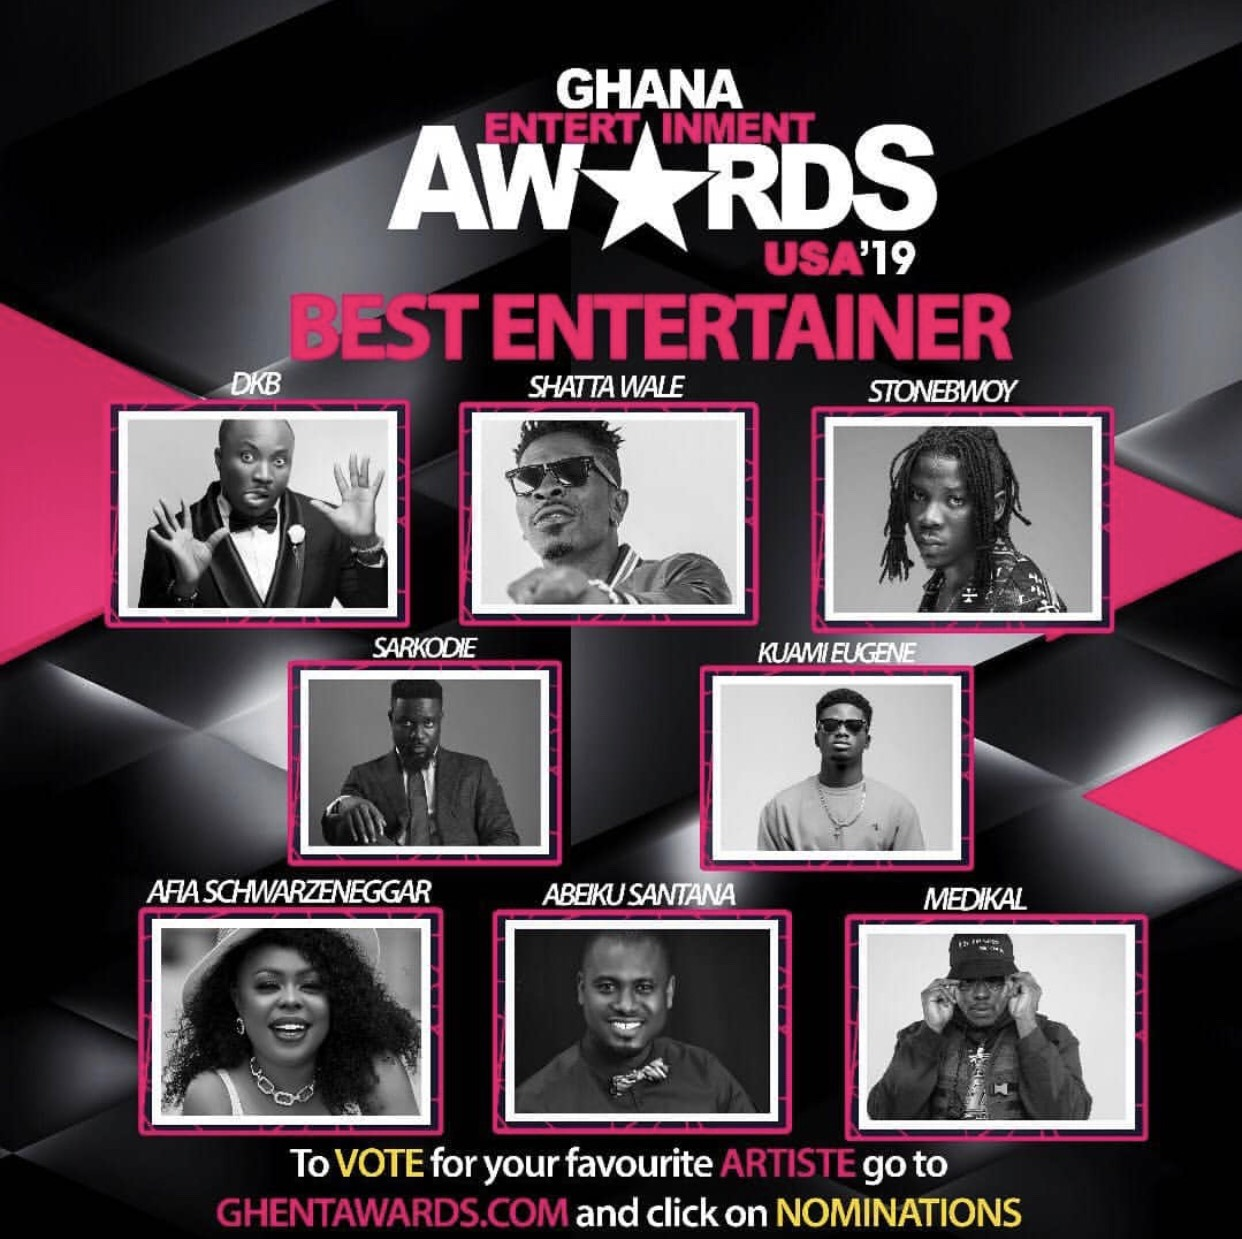 Here are the nominees for 2019 Ghana Entertainment Awards USA